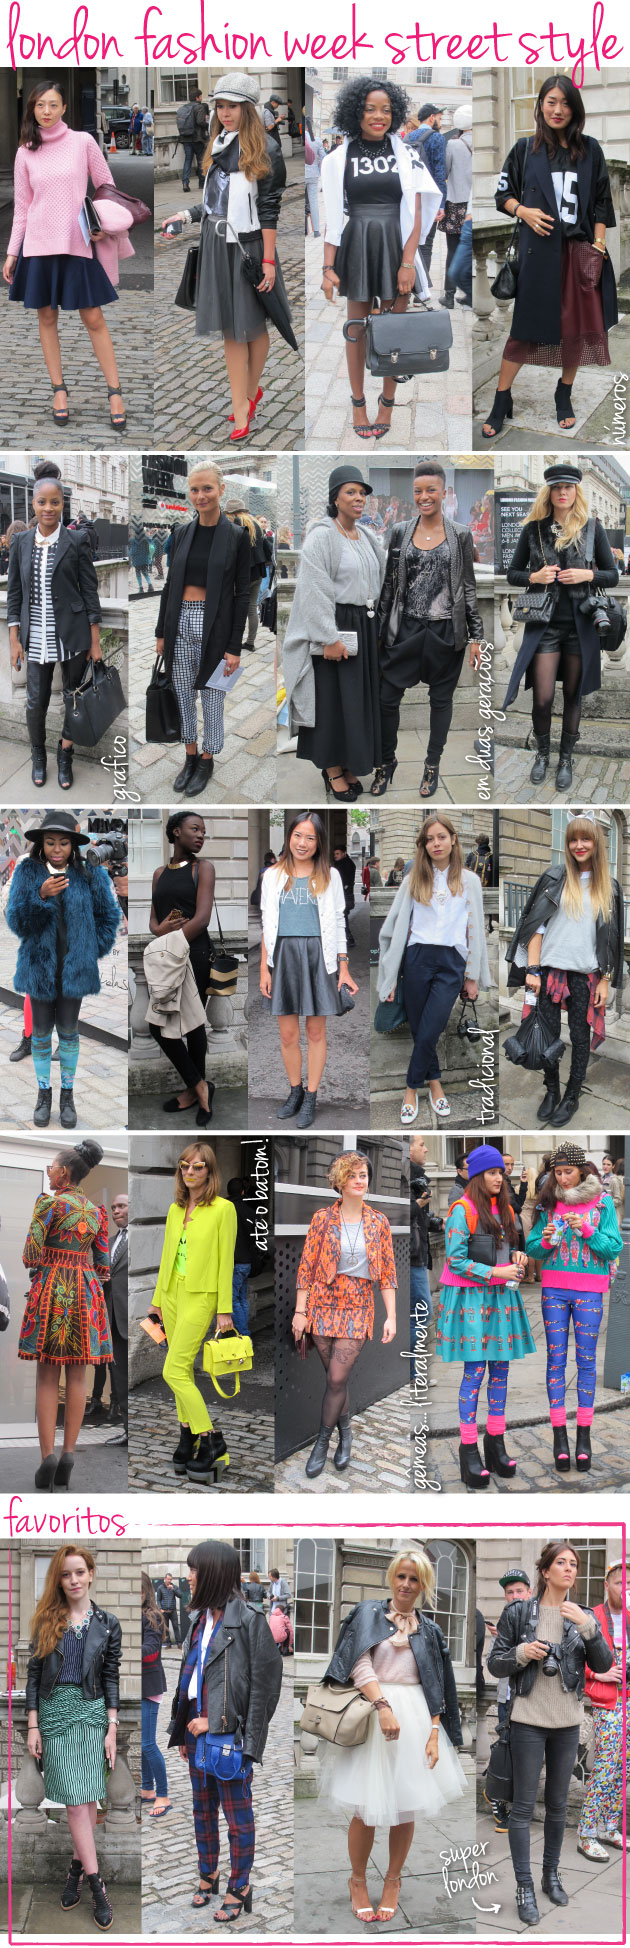 looks-street-style-london-fashion-week-starving-fotos-estilo-londres-inverno-outono-desfiles-semana-de-moda